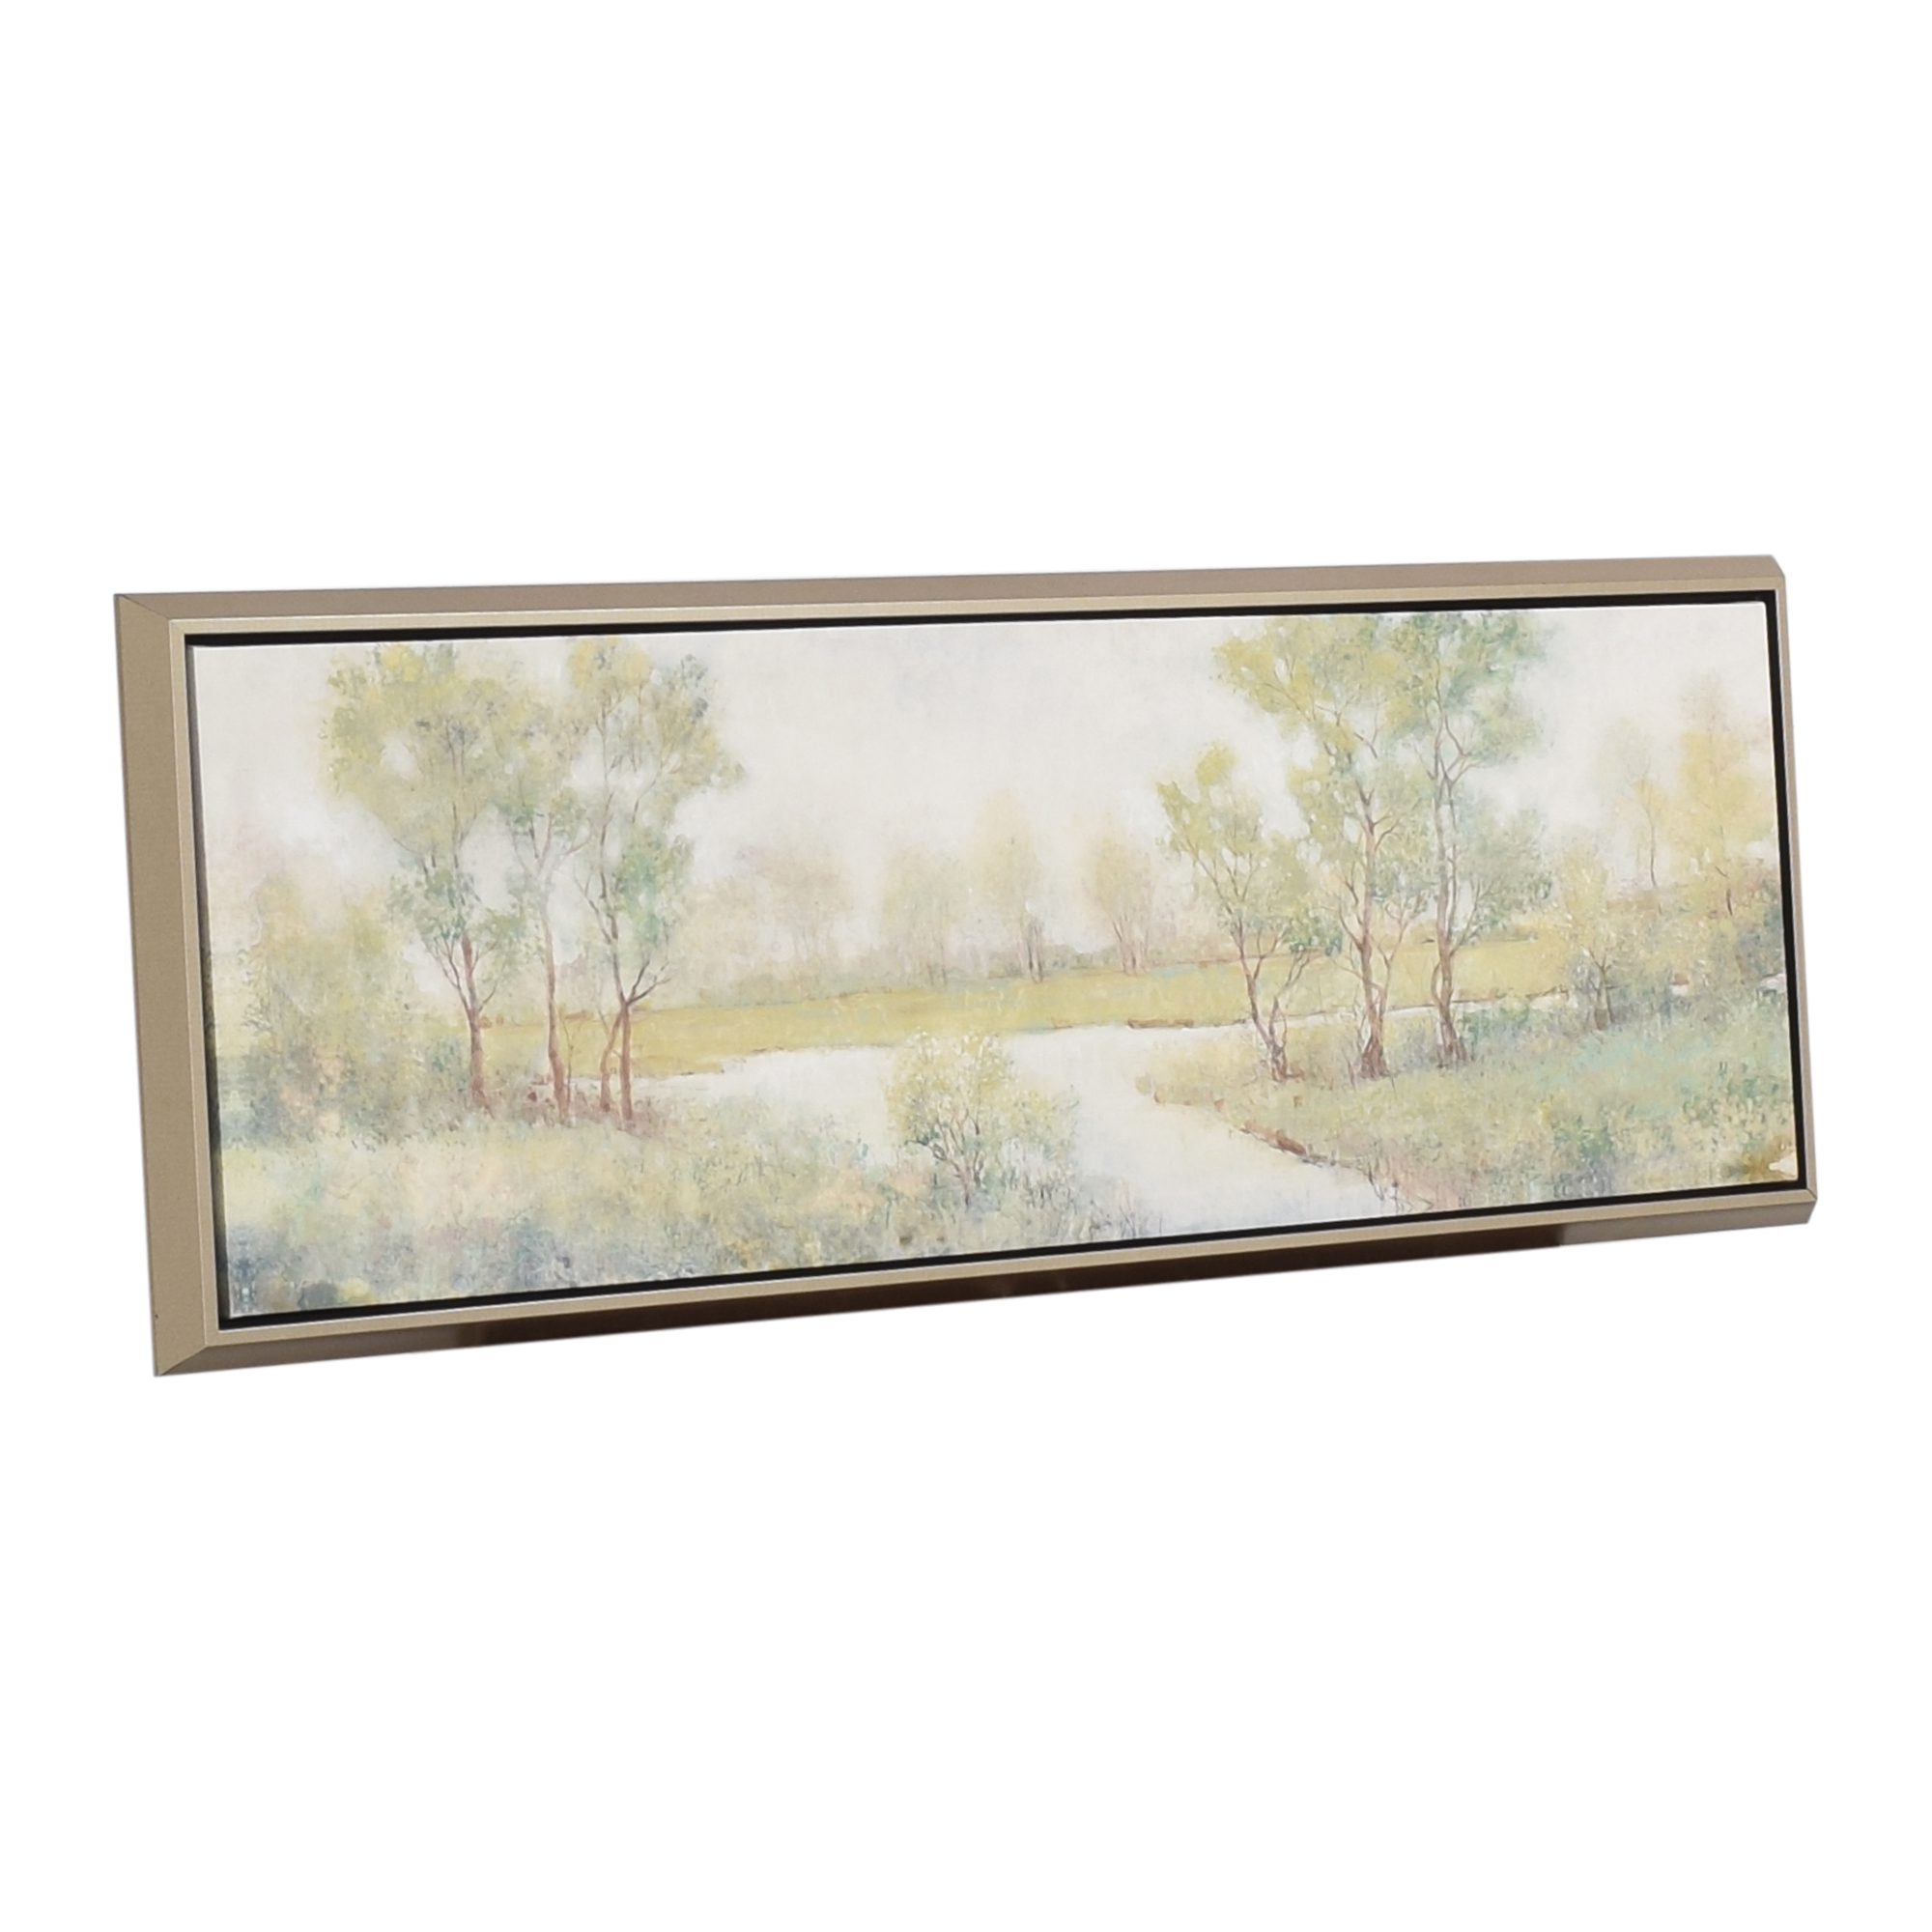 Horchow Horchow Landscape Framed Wall Art nyc